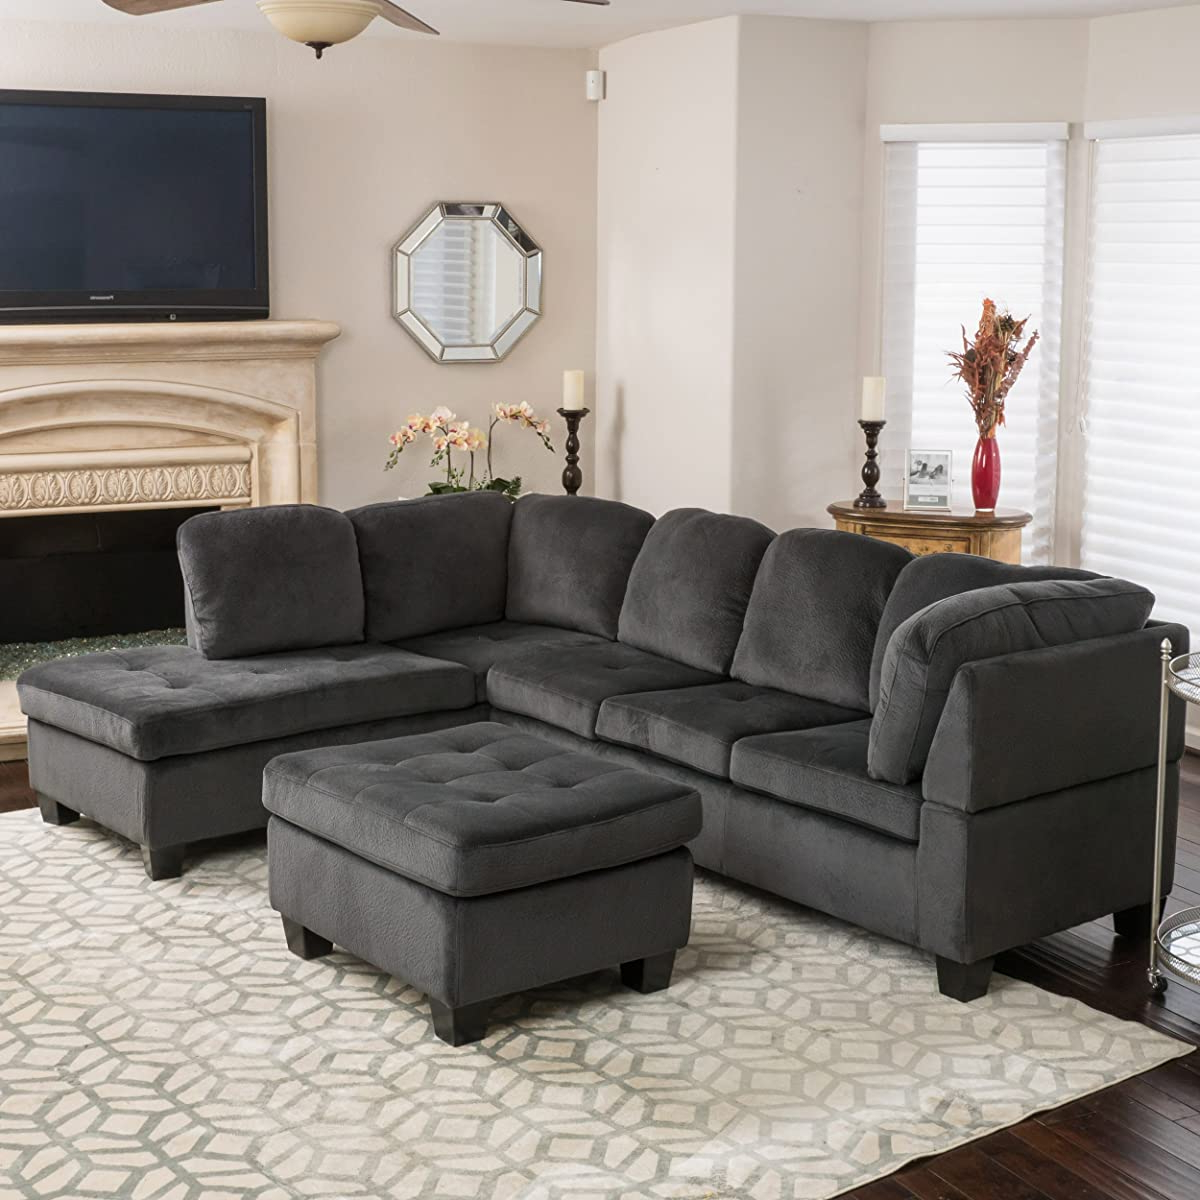 3Pc Polyfiber Sectional Sofas For Favorite Gotham 3 Piece Charcoal Fabric Sectional Sofa Set (View 6 of 25)